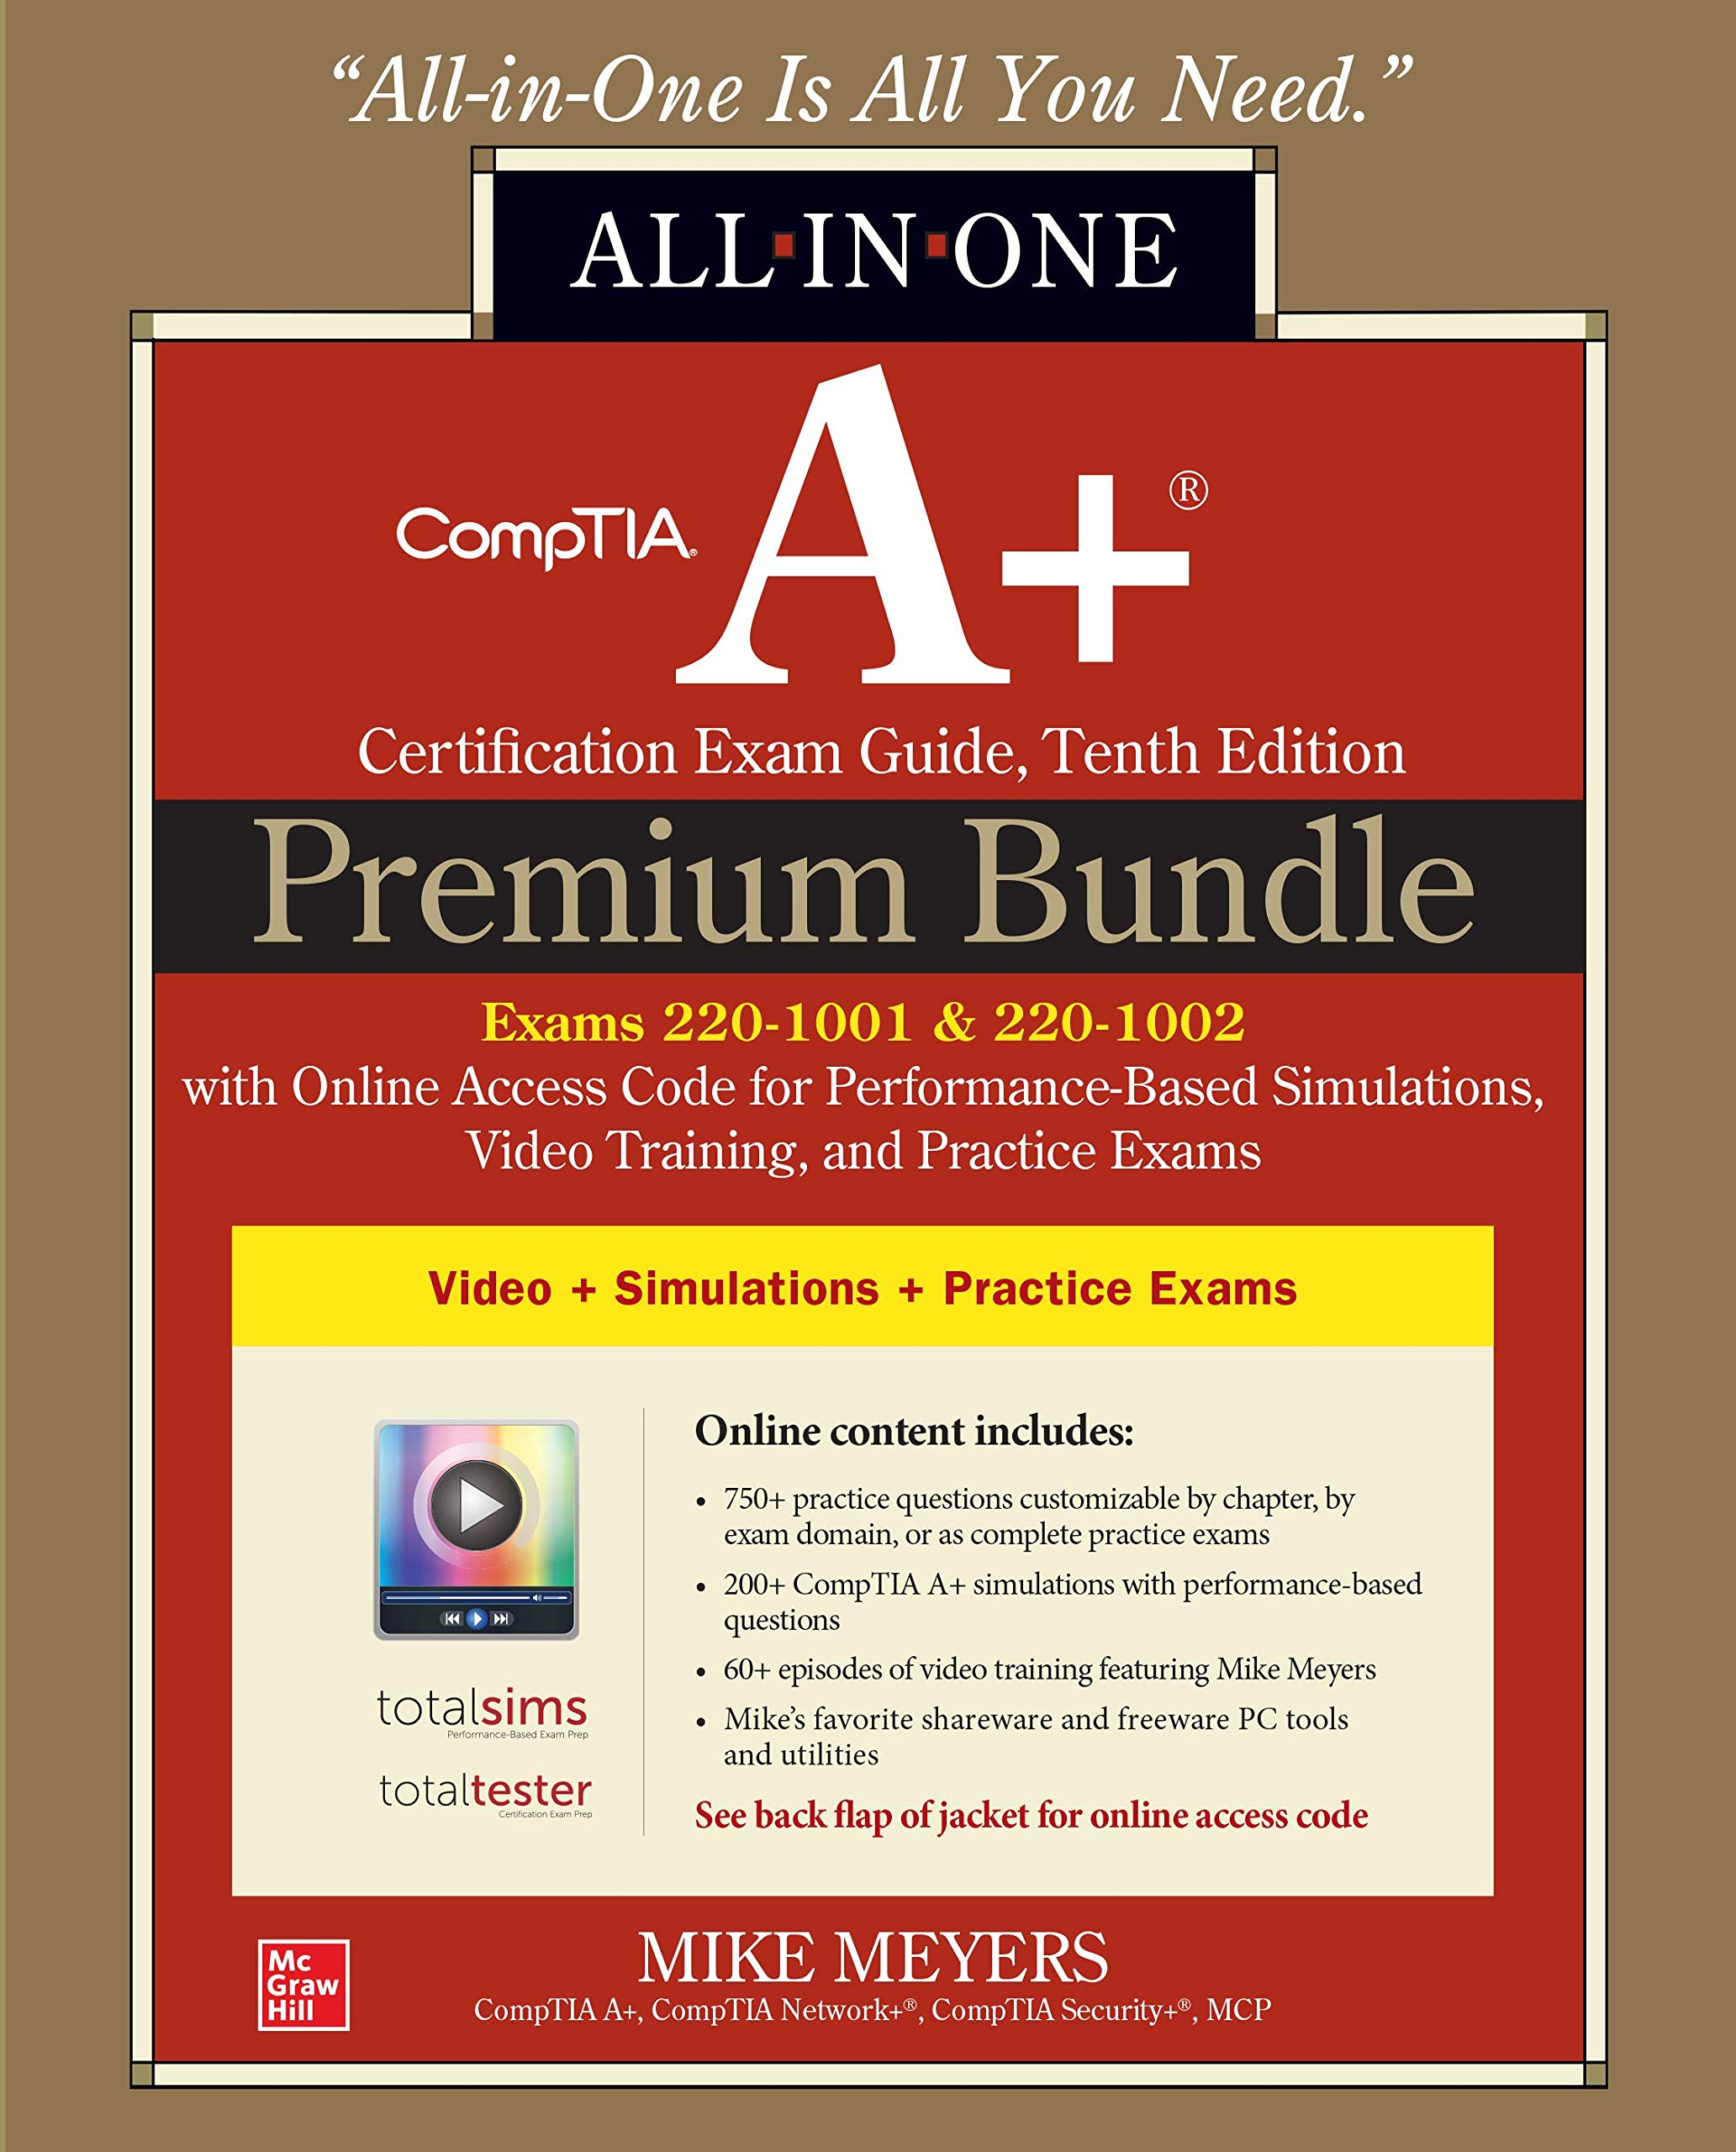 CompTIA A+ Certification Premium Bundle: All-in-One Exam Guide, Tenth Edition with Online Access Code for Performance-Based Simulations, Video Training, and Practice Exams (Exams 220-1001 & 220-1002) by McGraw-Hill Education